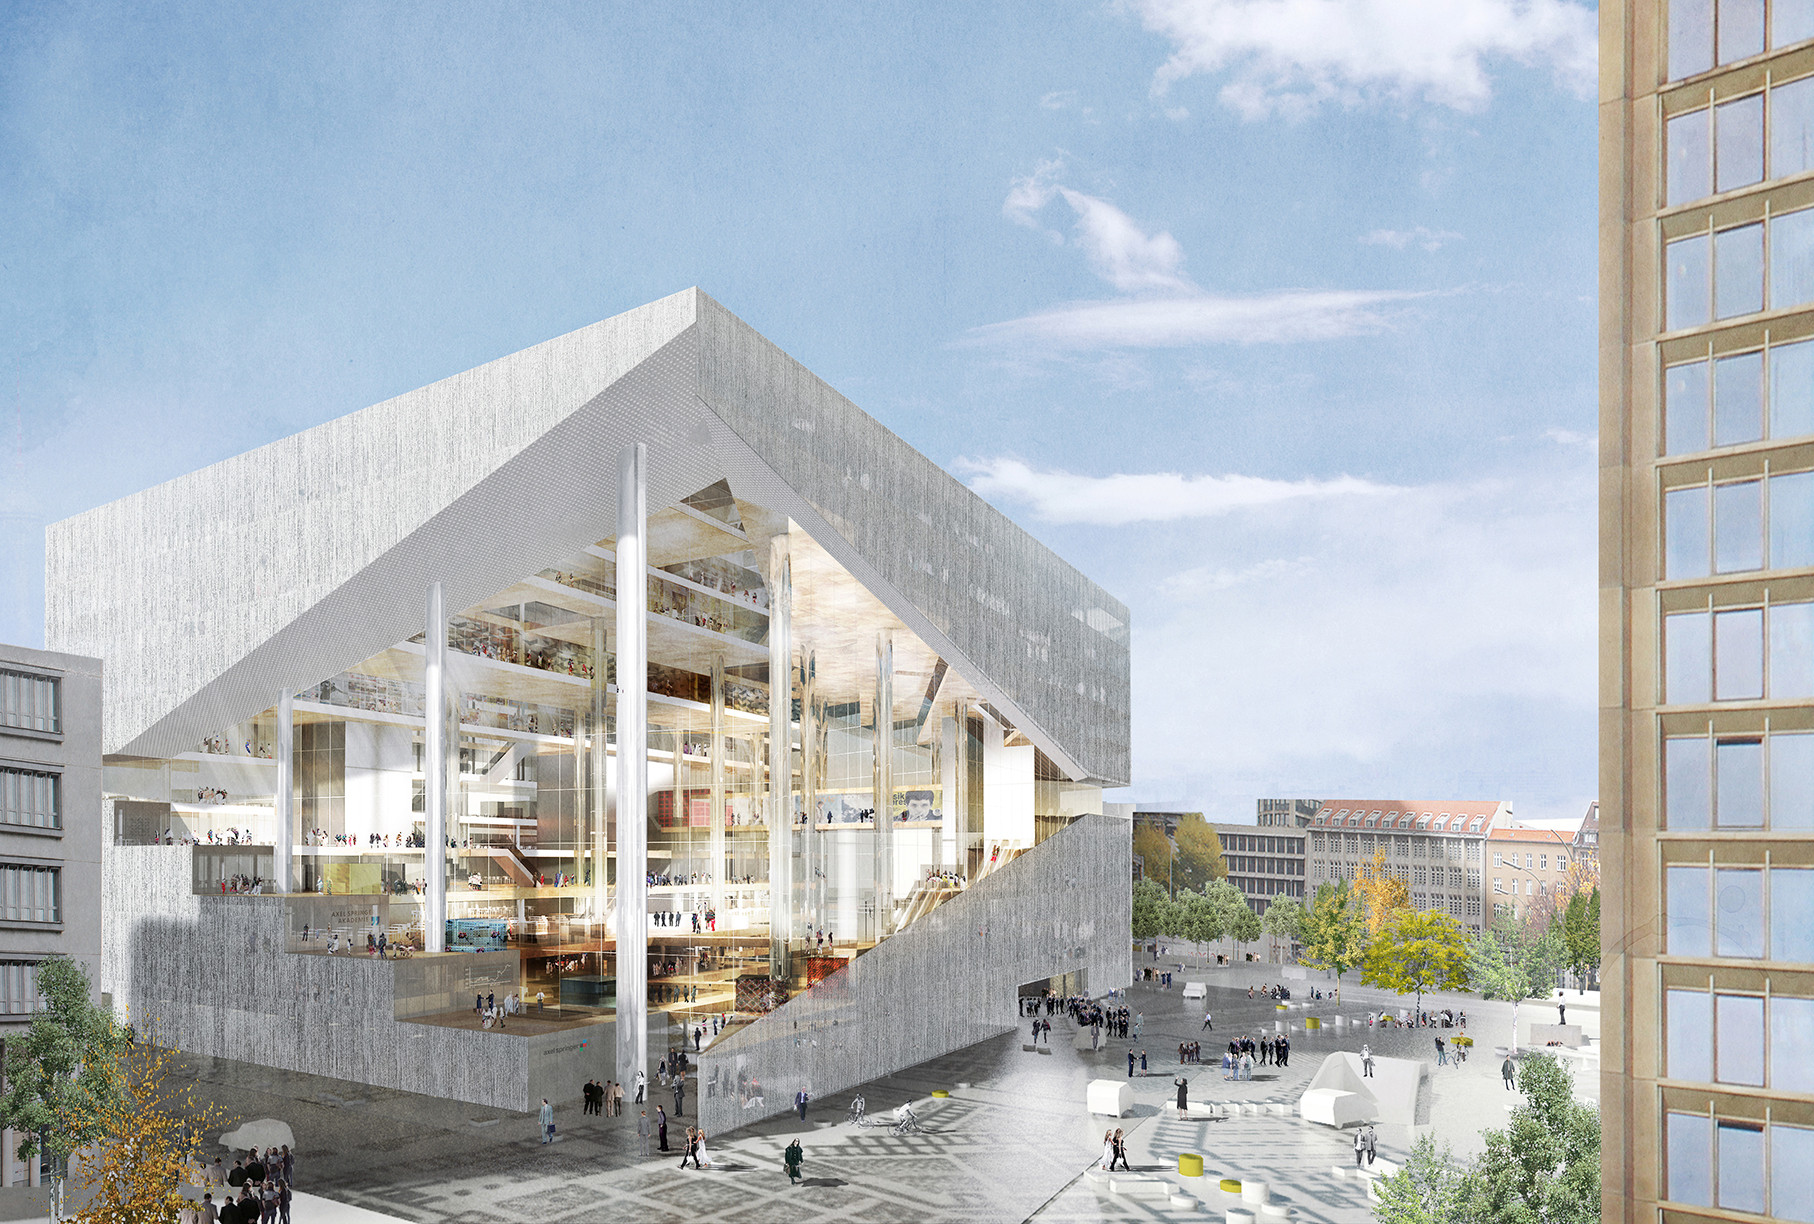 The School of Koolhaas, For the recent Axel Springer SE Media Campus in Berlin, OMA's proposal (shown) is up against designs by two of OMA's past employees.. Image Courtesy of Axel Springer SE